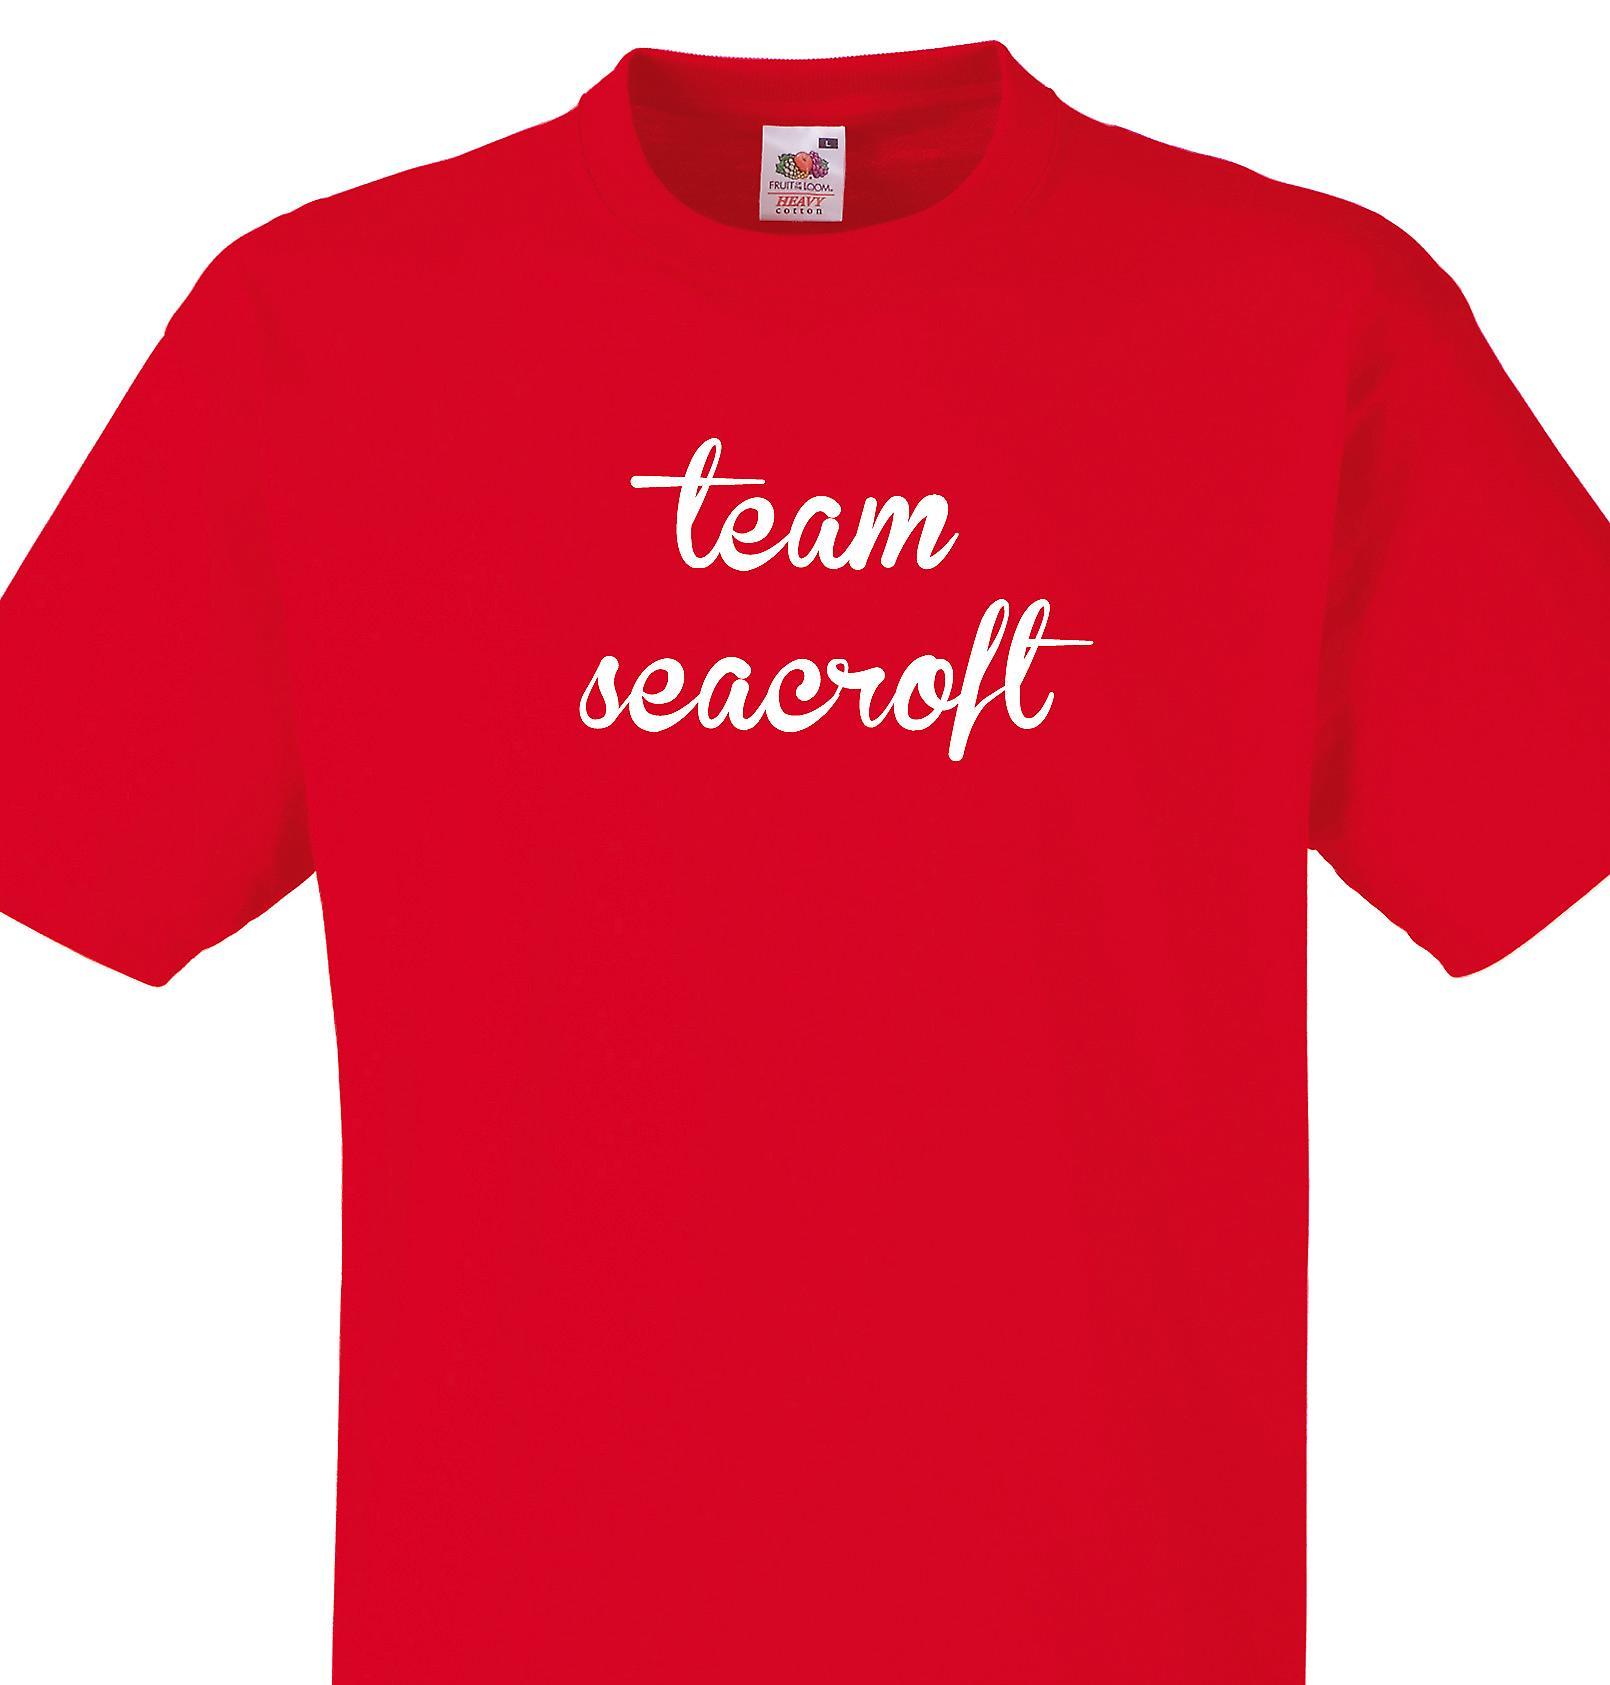 Team Seacroft Red T shirt